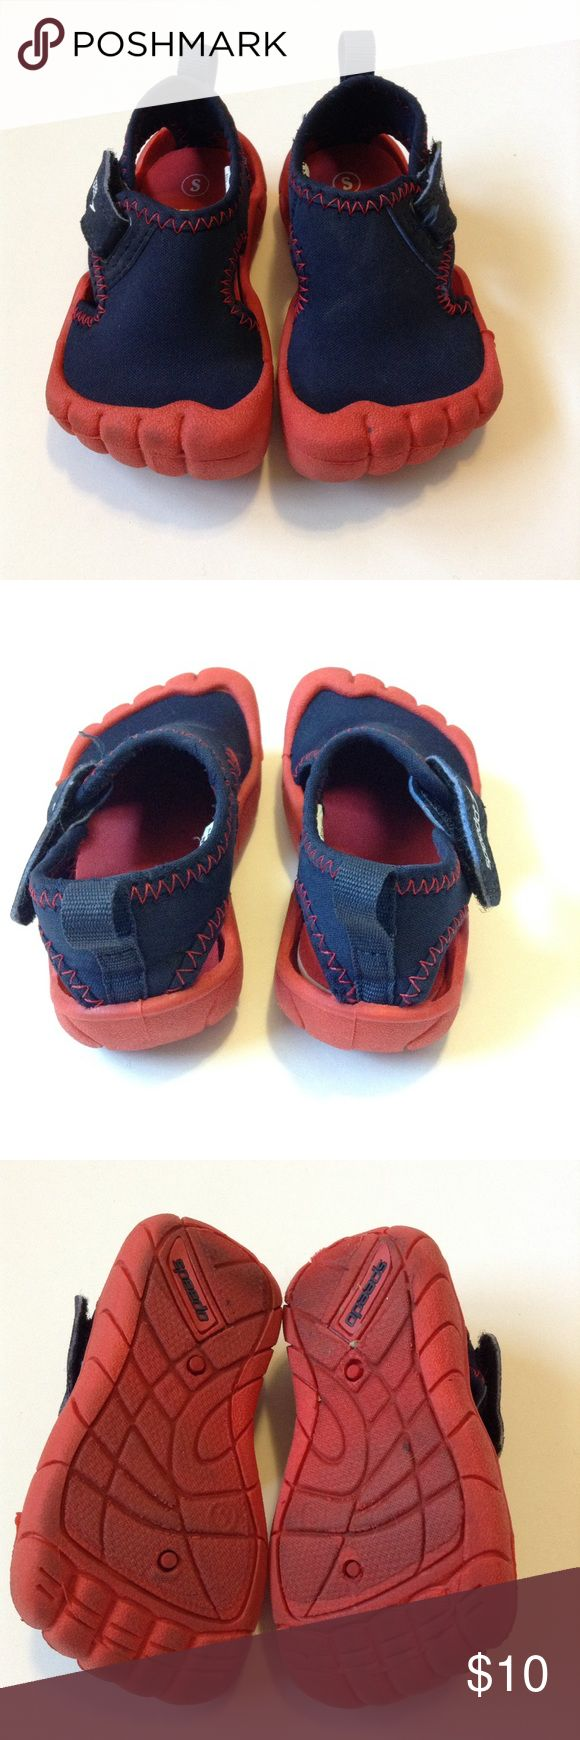 4 - Little Boy Speedo Water Shoes Cute little boy speedo water shoes. Neoprene upper, and rubber sole. Size small, but fit our little guy when he was size 3-4 shoes. Used but in great shape! Speedo Shoes Water Shoes